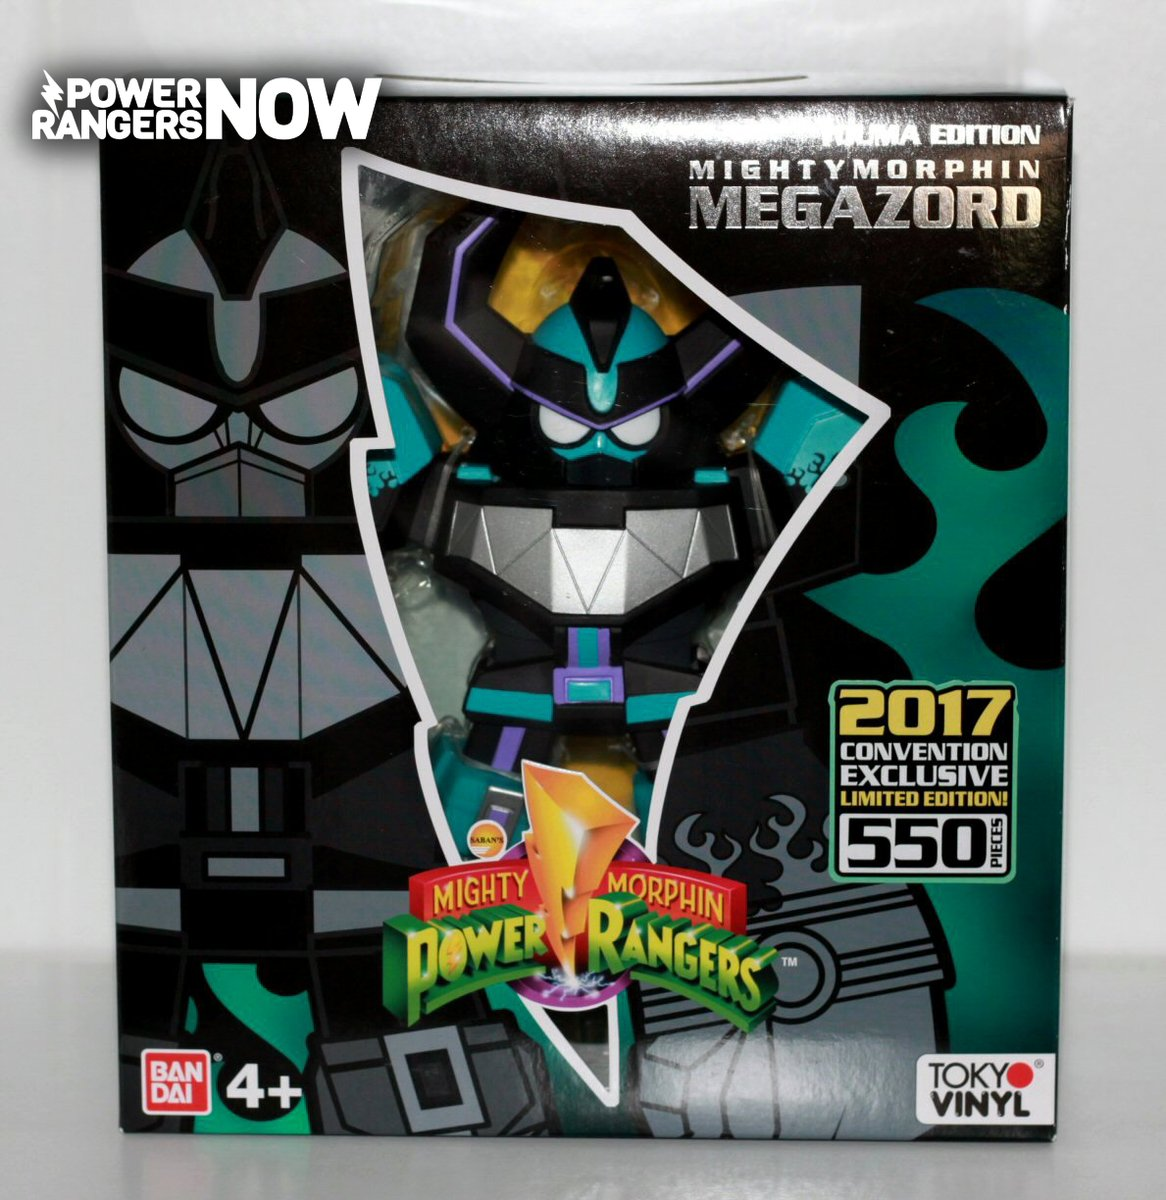 Nycc 2017 Power Rangers Exclusives Revealed Tokunation